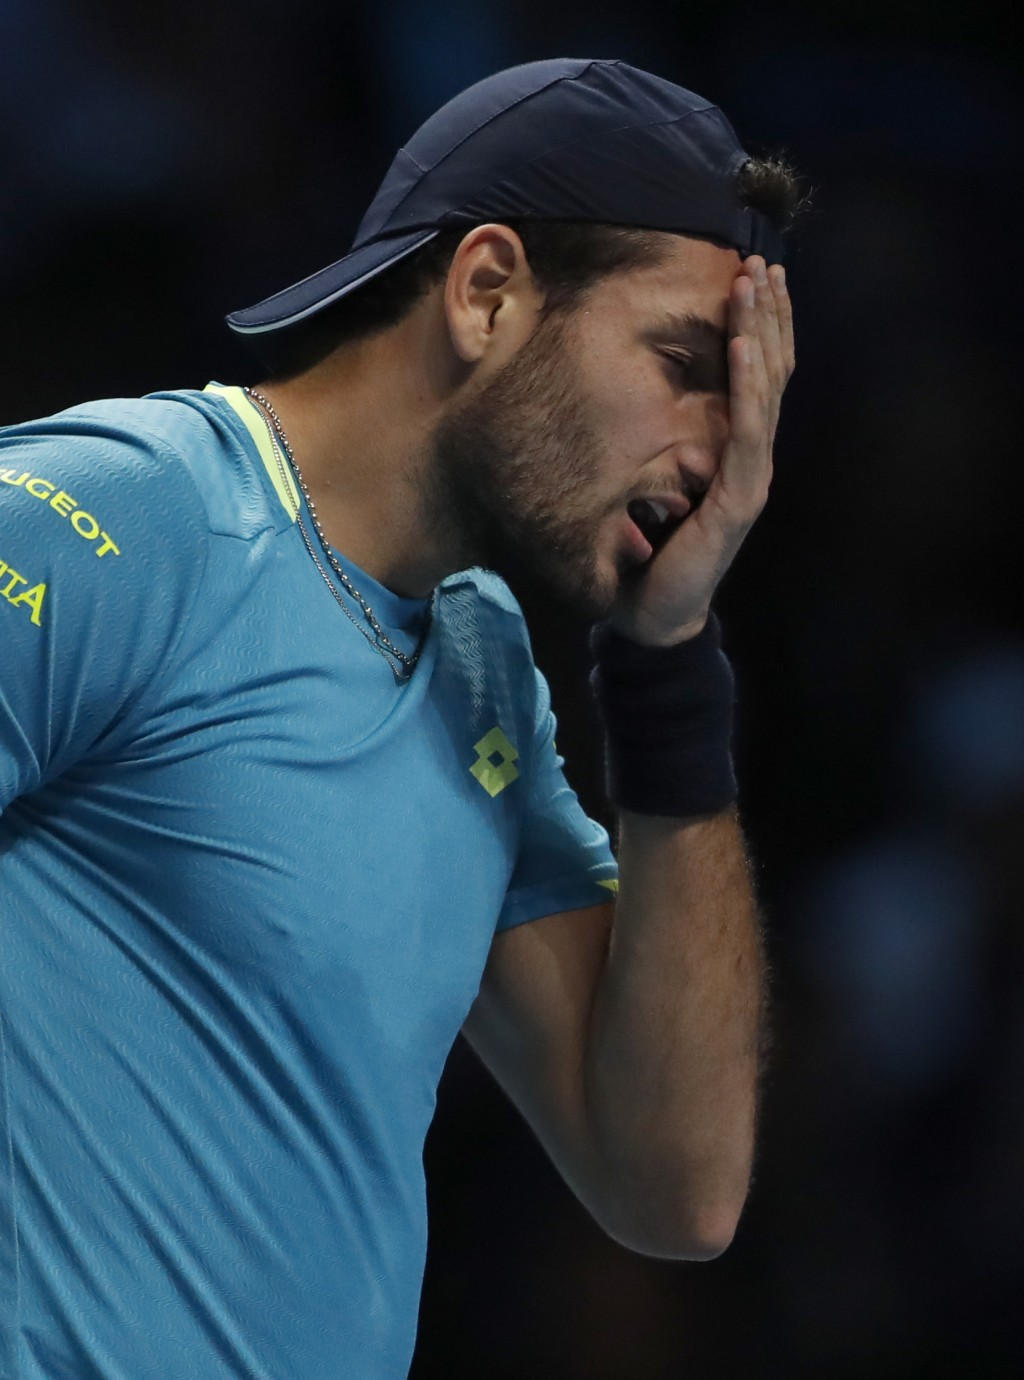 Italy's Matteo Berrettini reacts after missing a shot as he plays against Serbia's Novak Djokovic during their ATP World Tour Finals singles tennis ma...